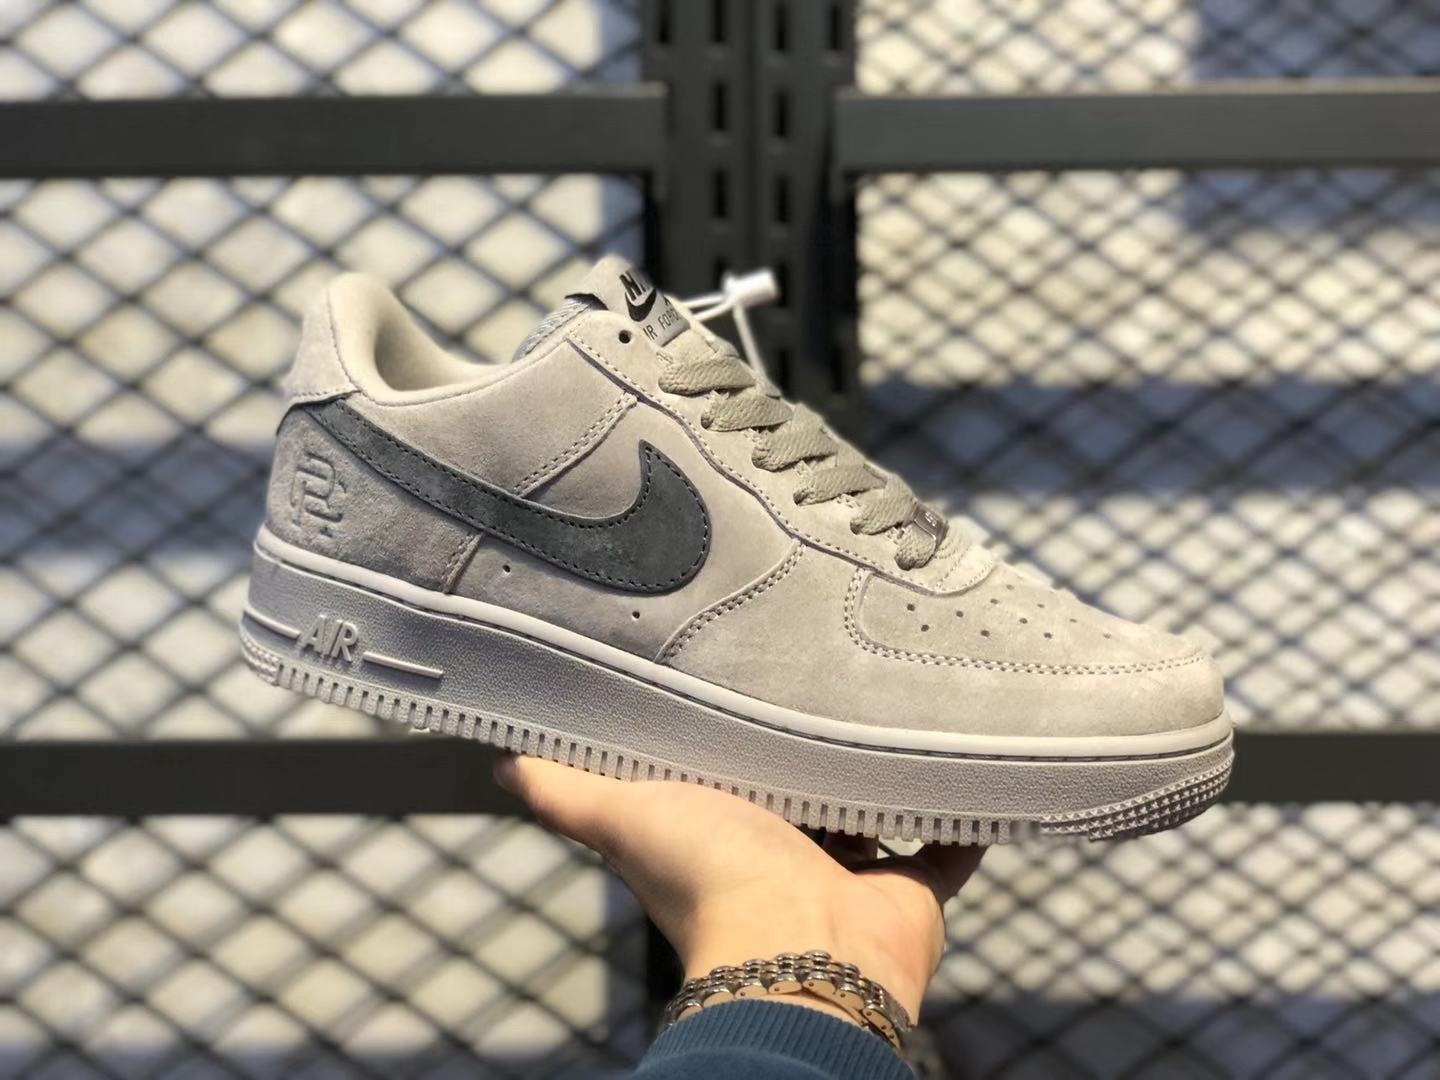 Reigning Champ x Nike Air Force 1 Low Light Grey/Black Suede Shoes AA1117-118